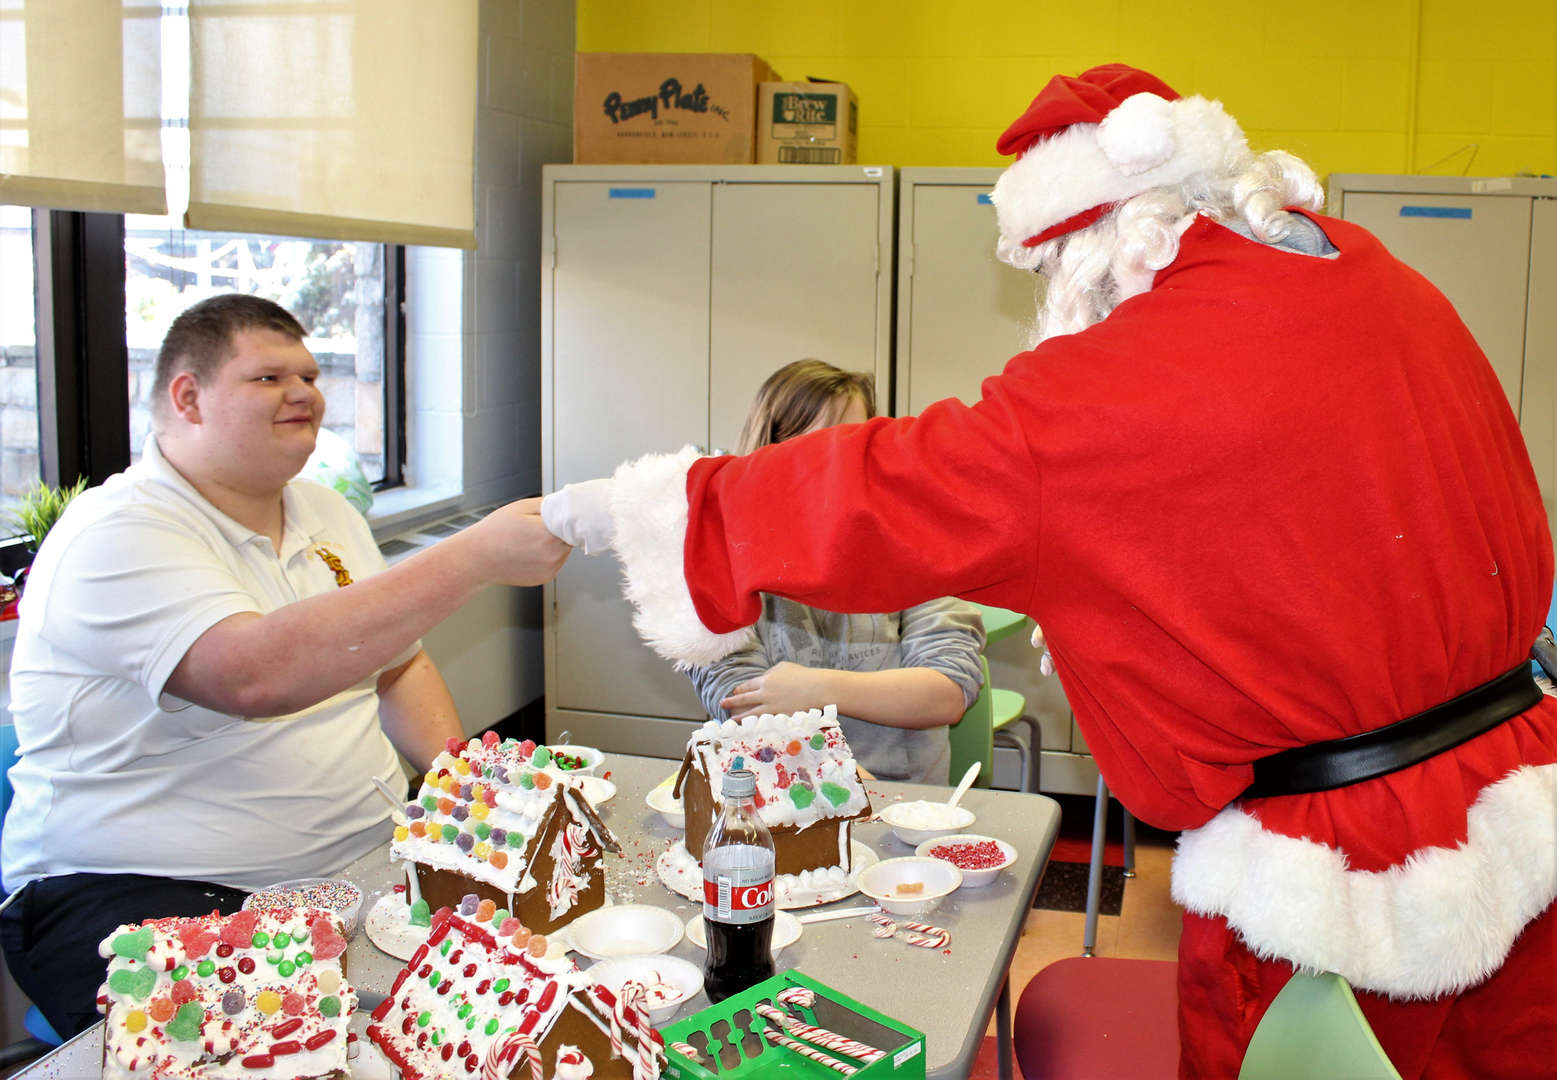 Santa Claus gives a candy cane to a male student during a holiday party.